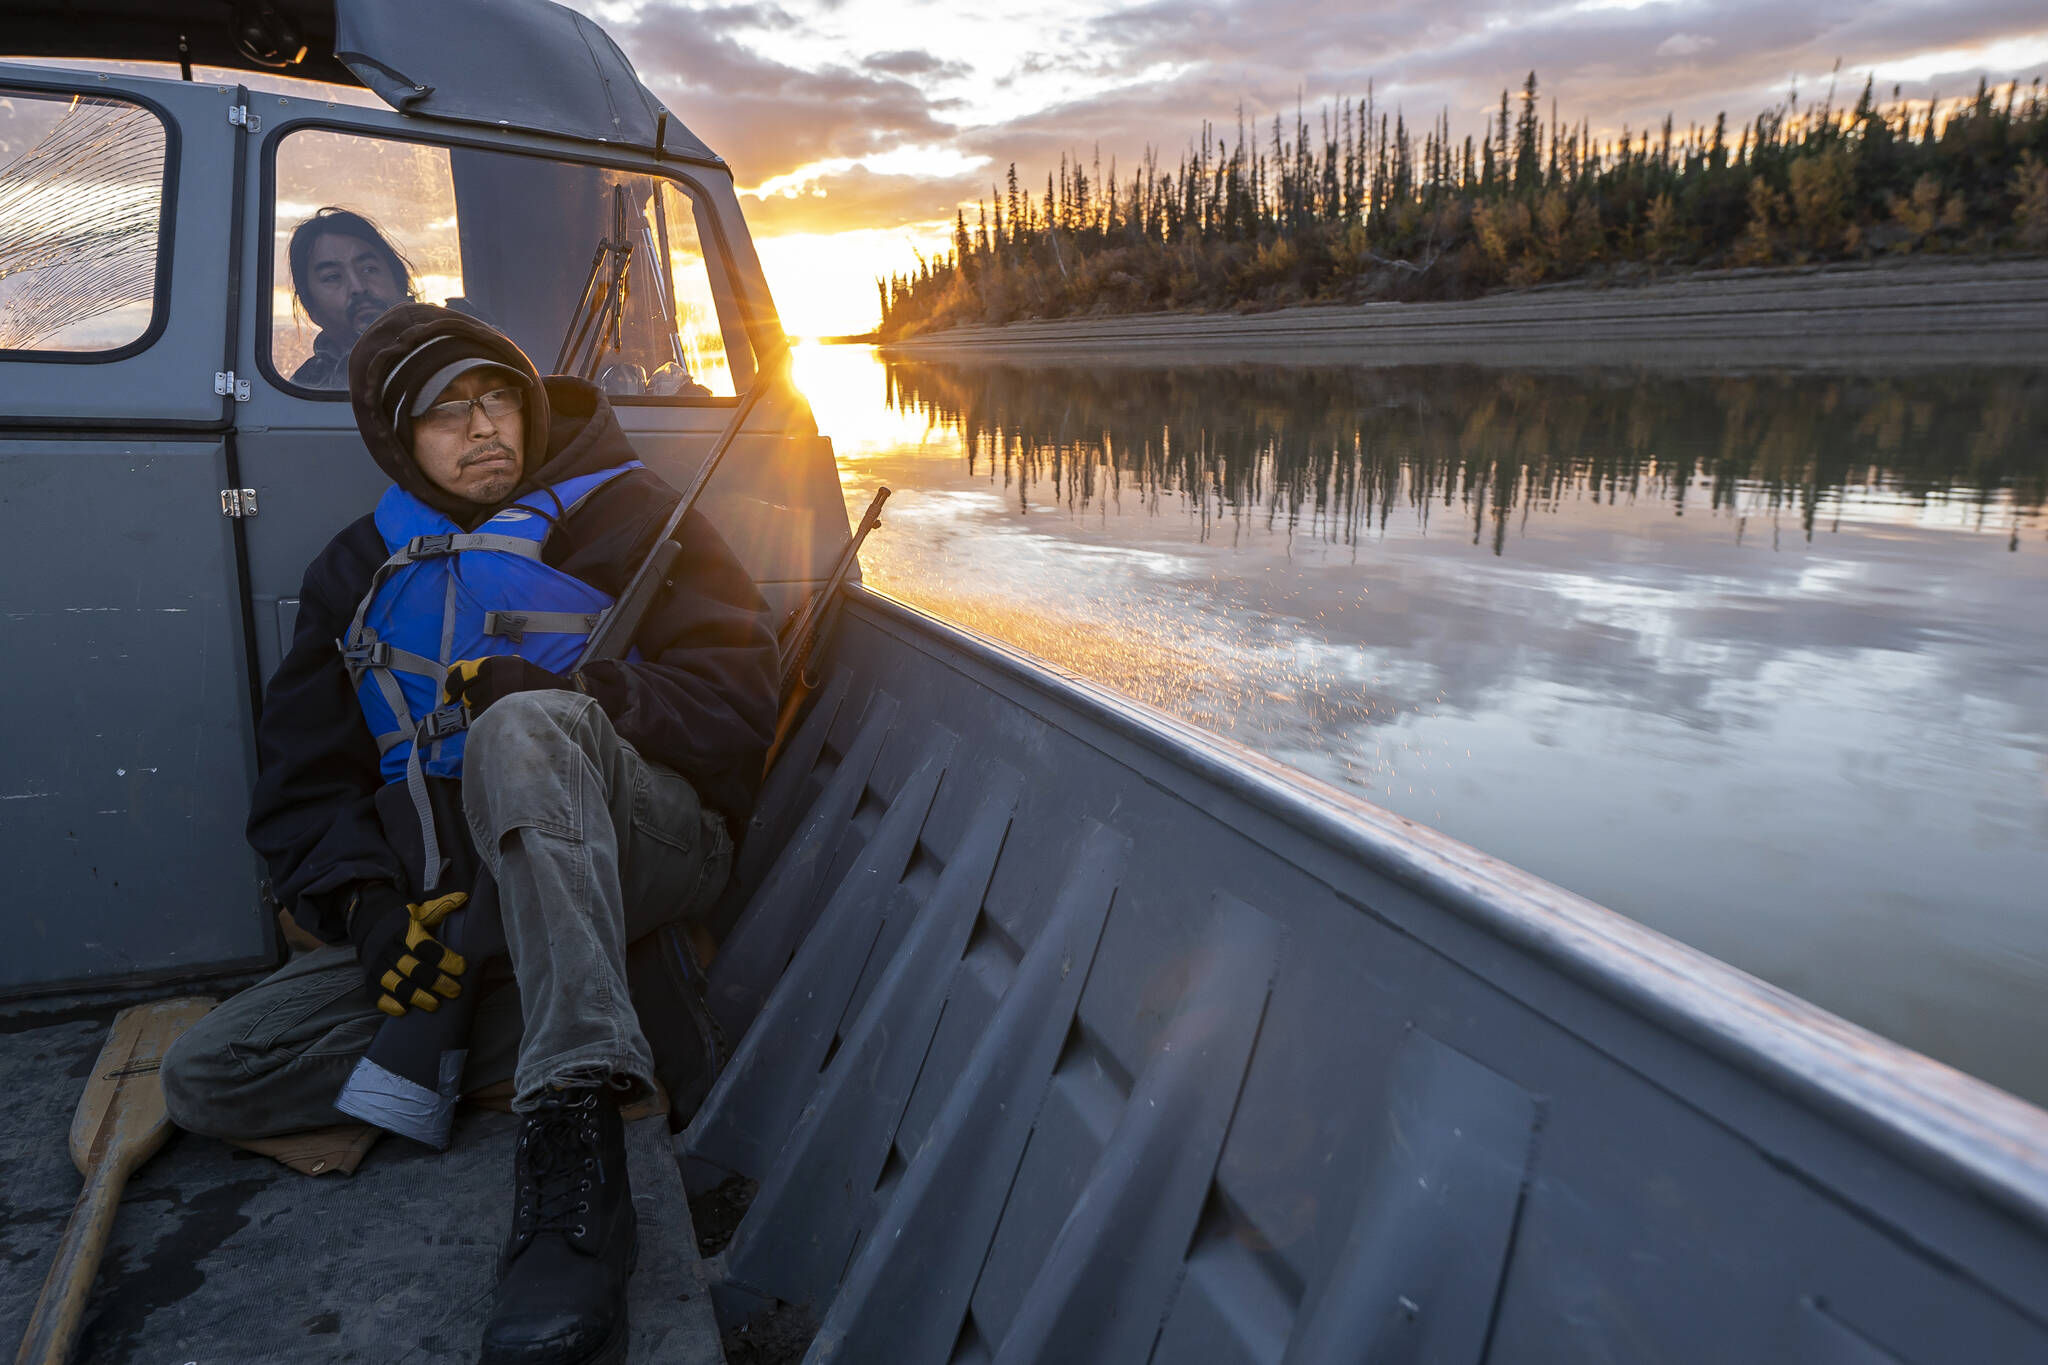 Michael Williams scans the shoreline for moose while traveling up the Yukon River on Tuesday, Sept. 14, 2021, near Stevens Village, Alaska. For the first time in memory, both king and chum salmon have dwindled to almost nothing and the state has banned salmon fishing on the Yukon. The remote communities that dot the river and live off its bounty are desperate and doubling down on moose and caribou hunts in the waning days of fall. (AP Photo/Nathan Howard)